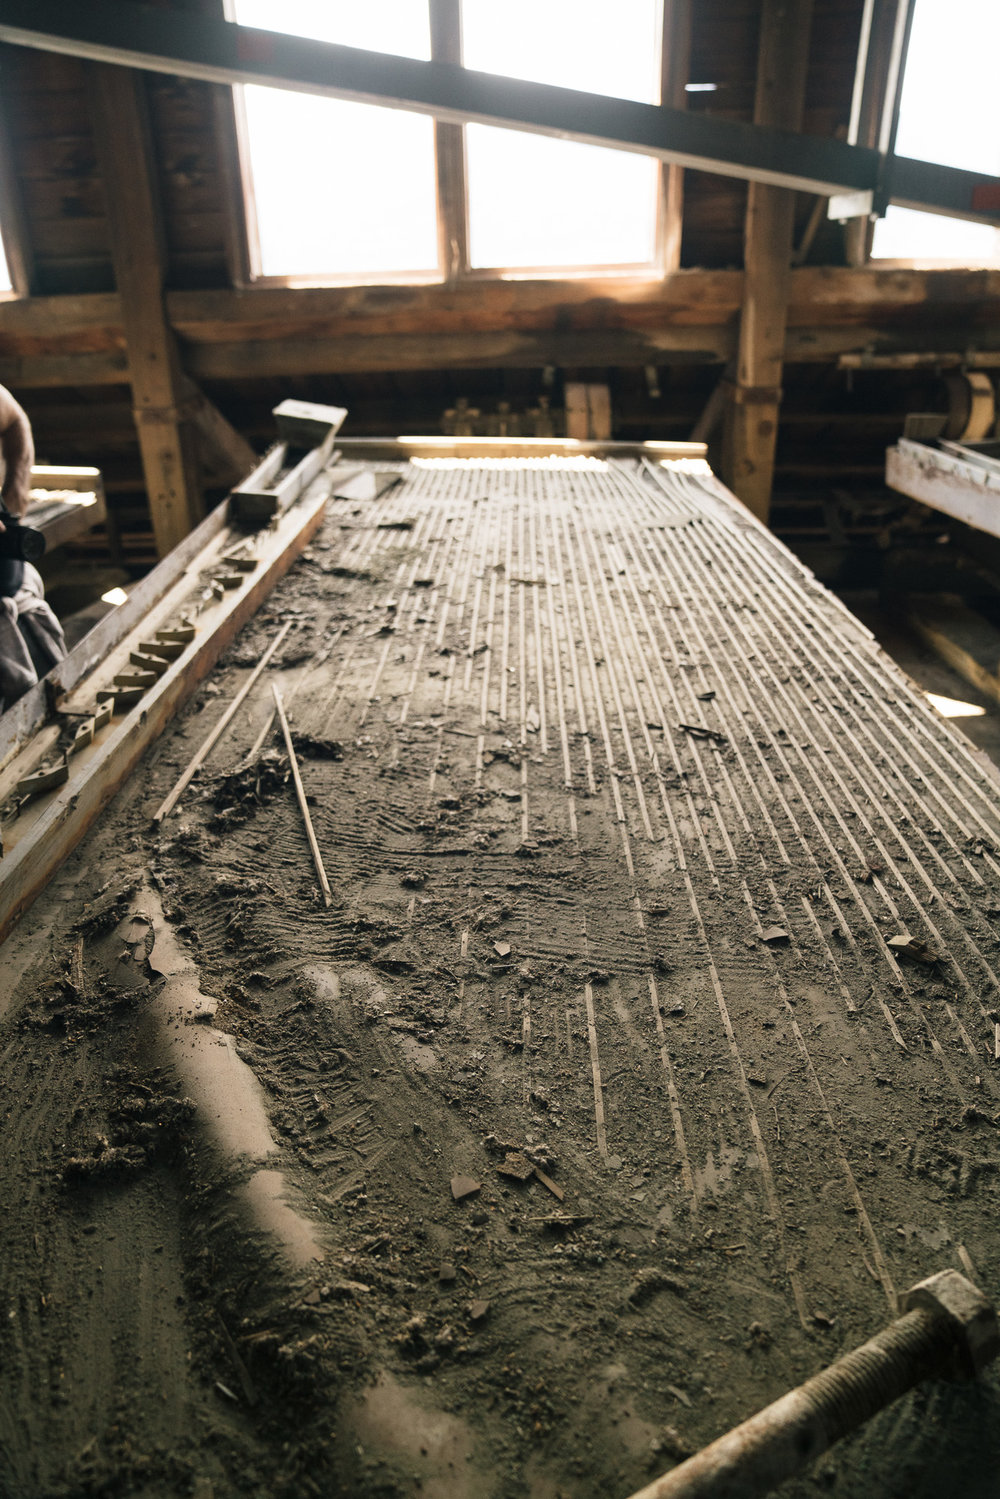 Rock was put in on one side of this table and then the table was shaken so the rocks jumped over the wooden lines, which increased in height over the width of the table. The lighter rocks would make it over every line and shake off, while the heavier, copper-filled rocks would stay on the table and sort themselves by density.